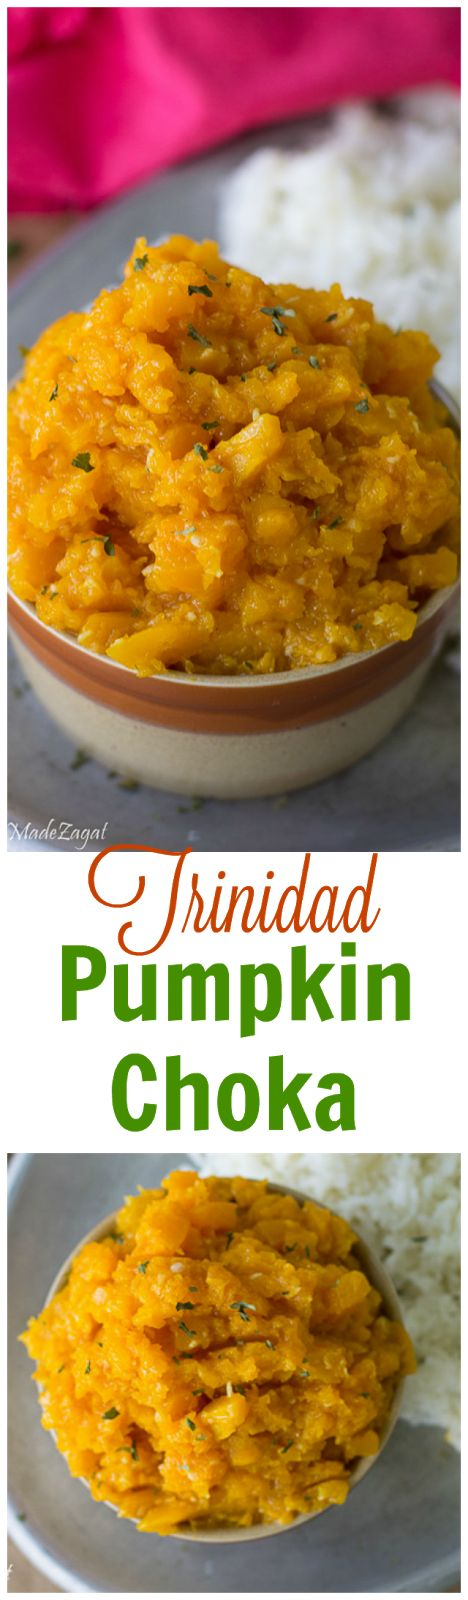 Pumpkin Choka - An easy recipe for seasoned, mashed pumpkin dish, traditionally severed as a side with roti. www.homemadezagat.com